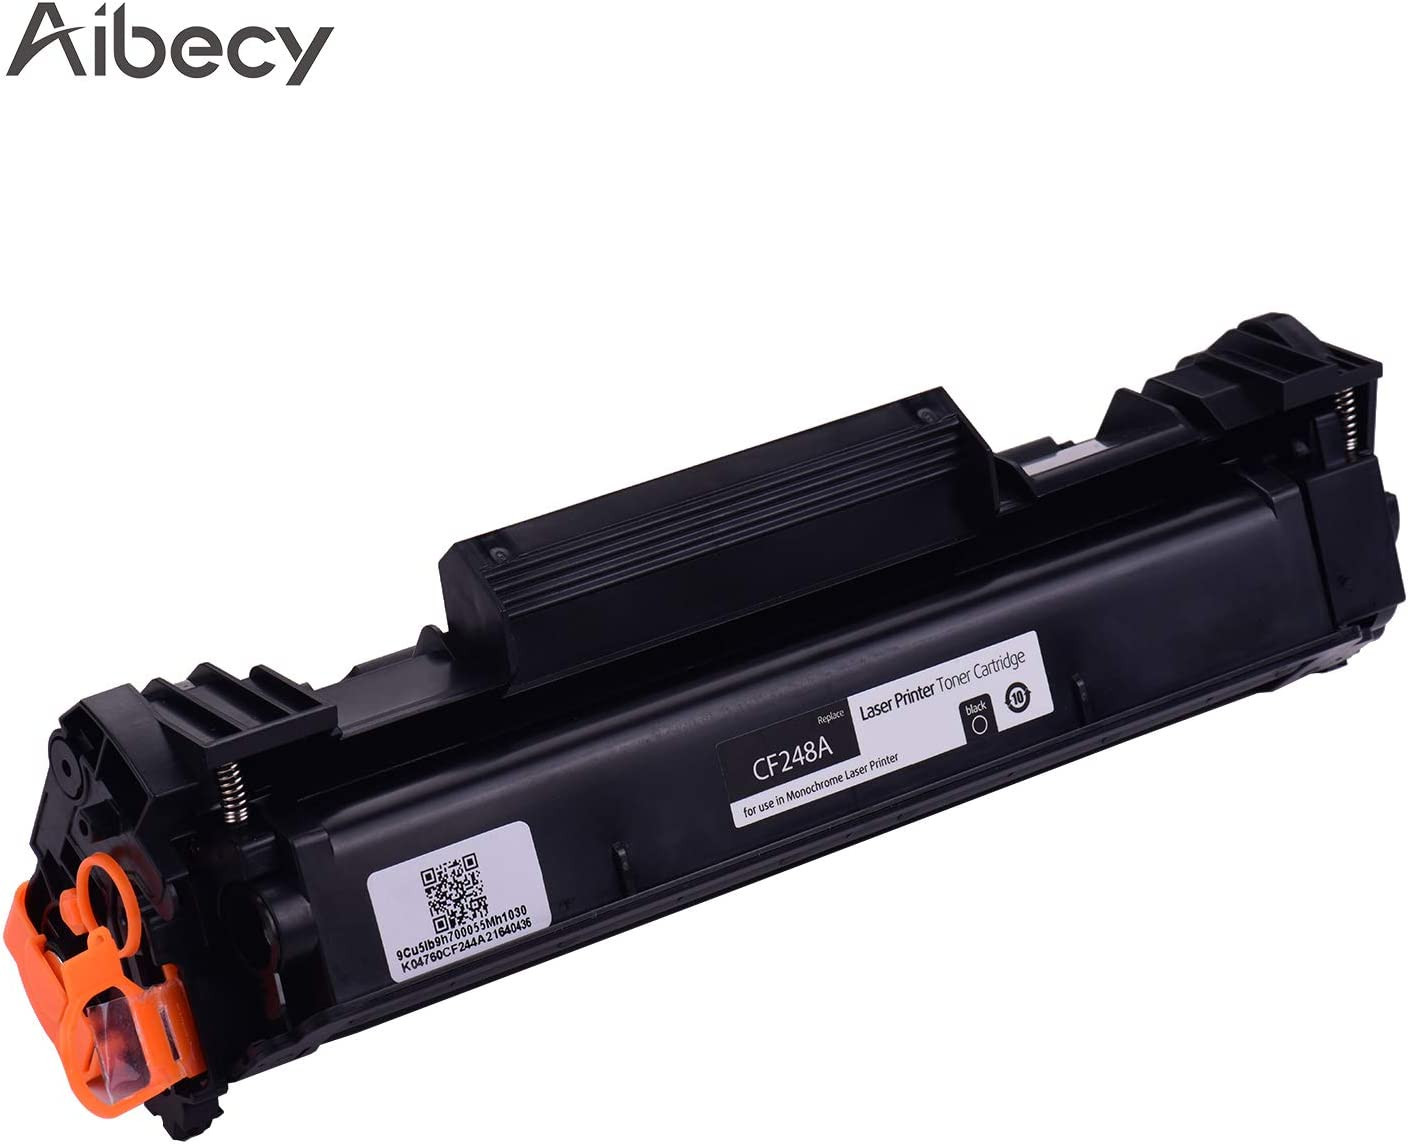 Aibecy Compatible Toner Cartridge Replacement for HP CF248A 48A Toner with Chip Compatible with HP Laserjet Pro MFP M28a M28w M17a M17w M15a M15w M14a M14w Printer